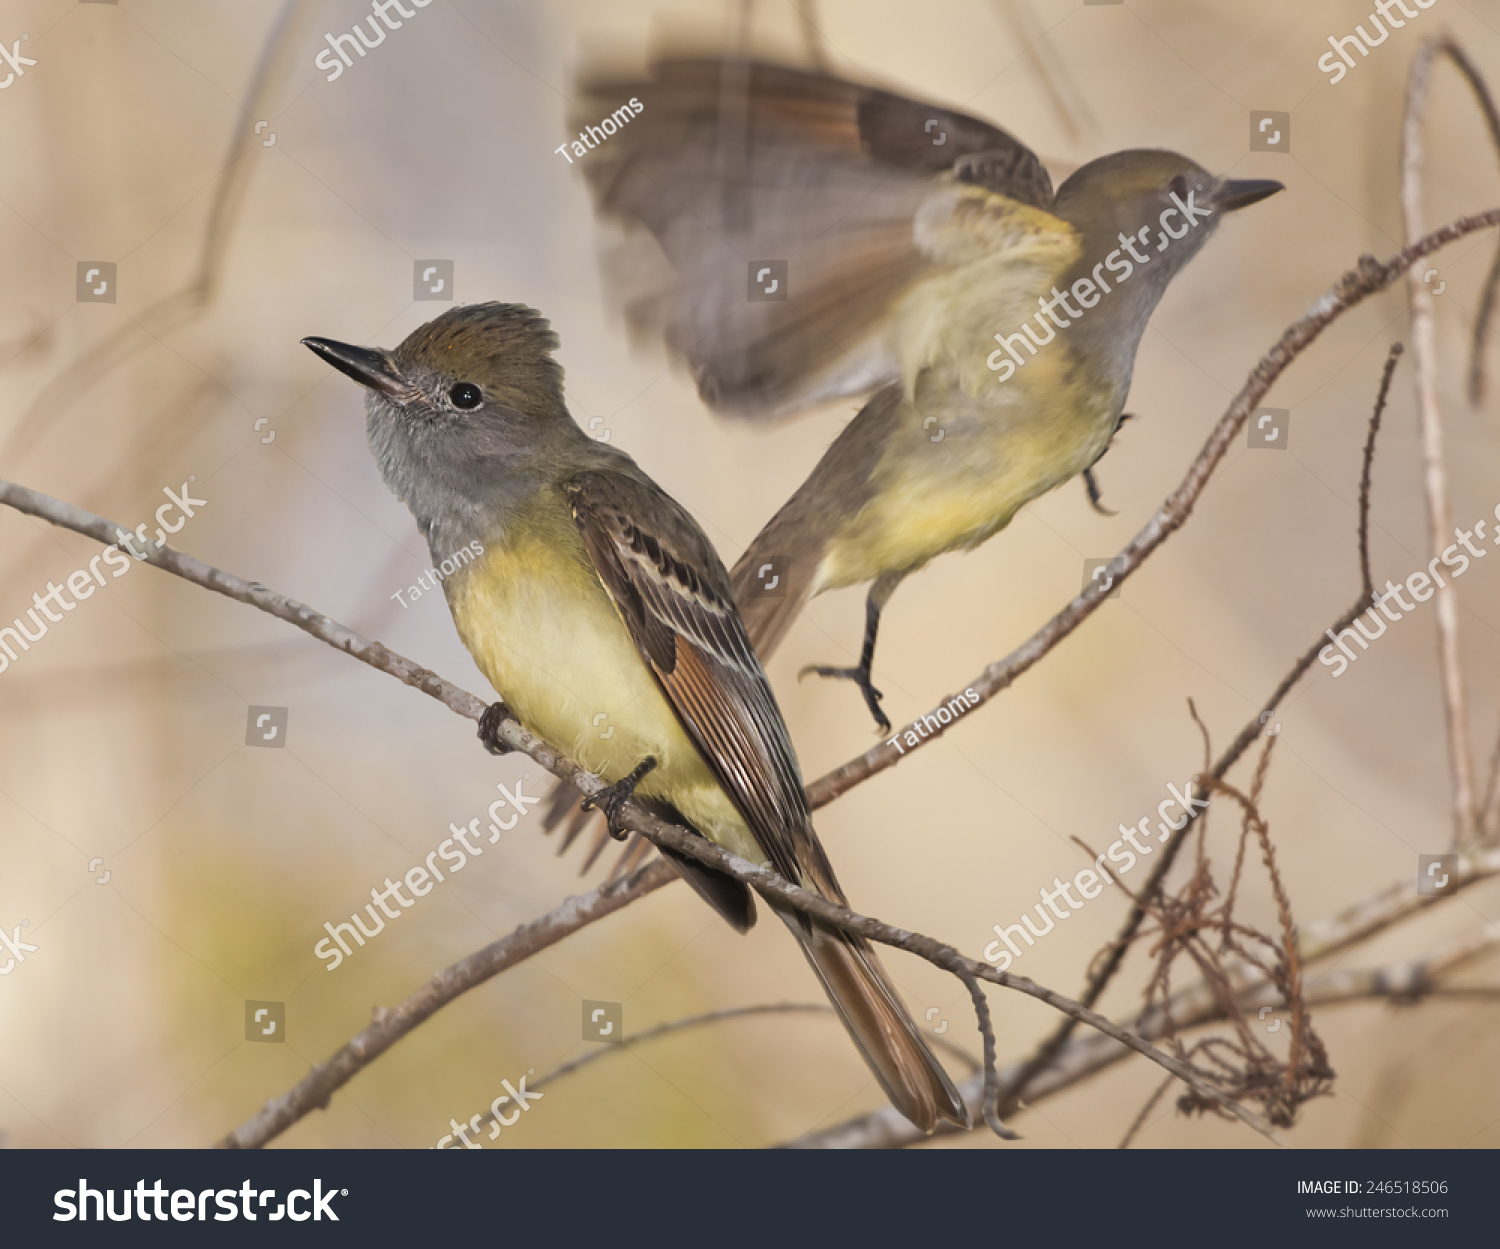 stock-photo-great-crested-flycatcher-two